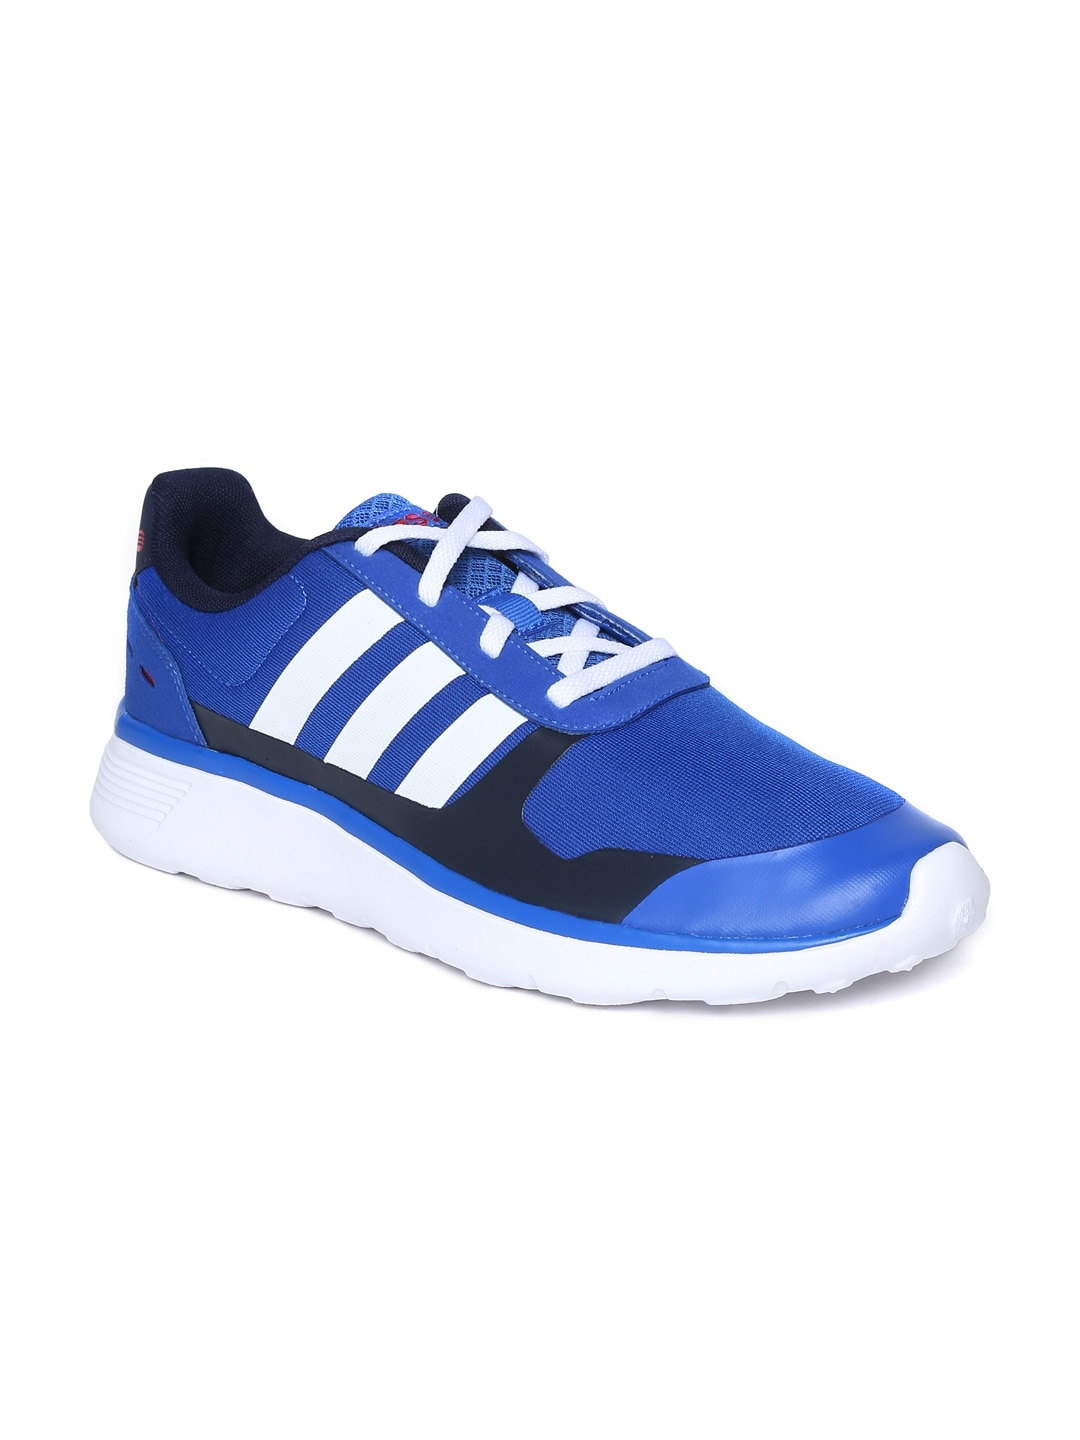 Adidas NEO Men Blue Lite Runner Casual Shoes